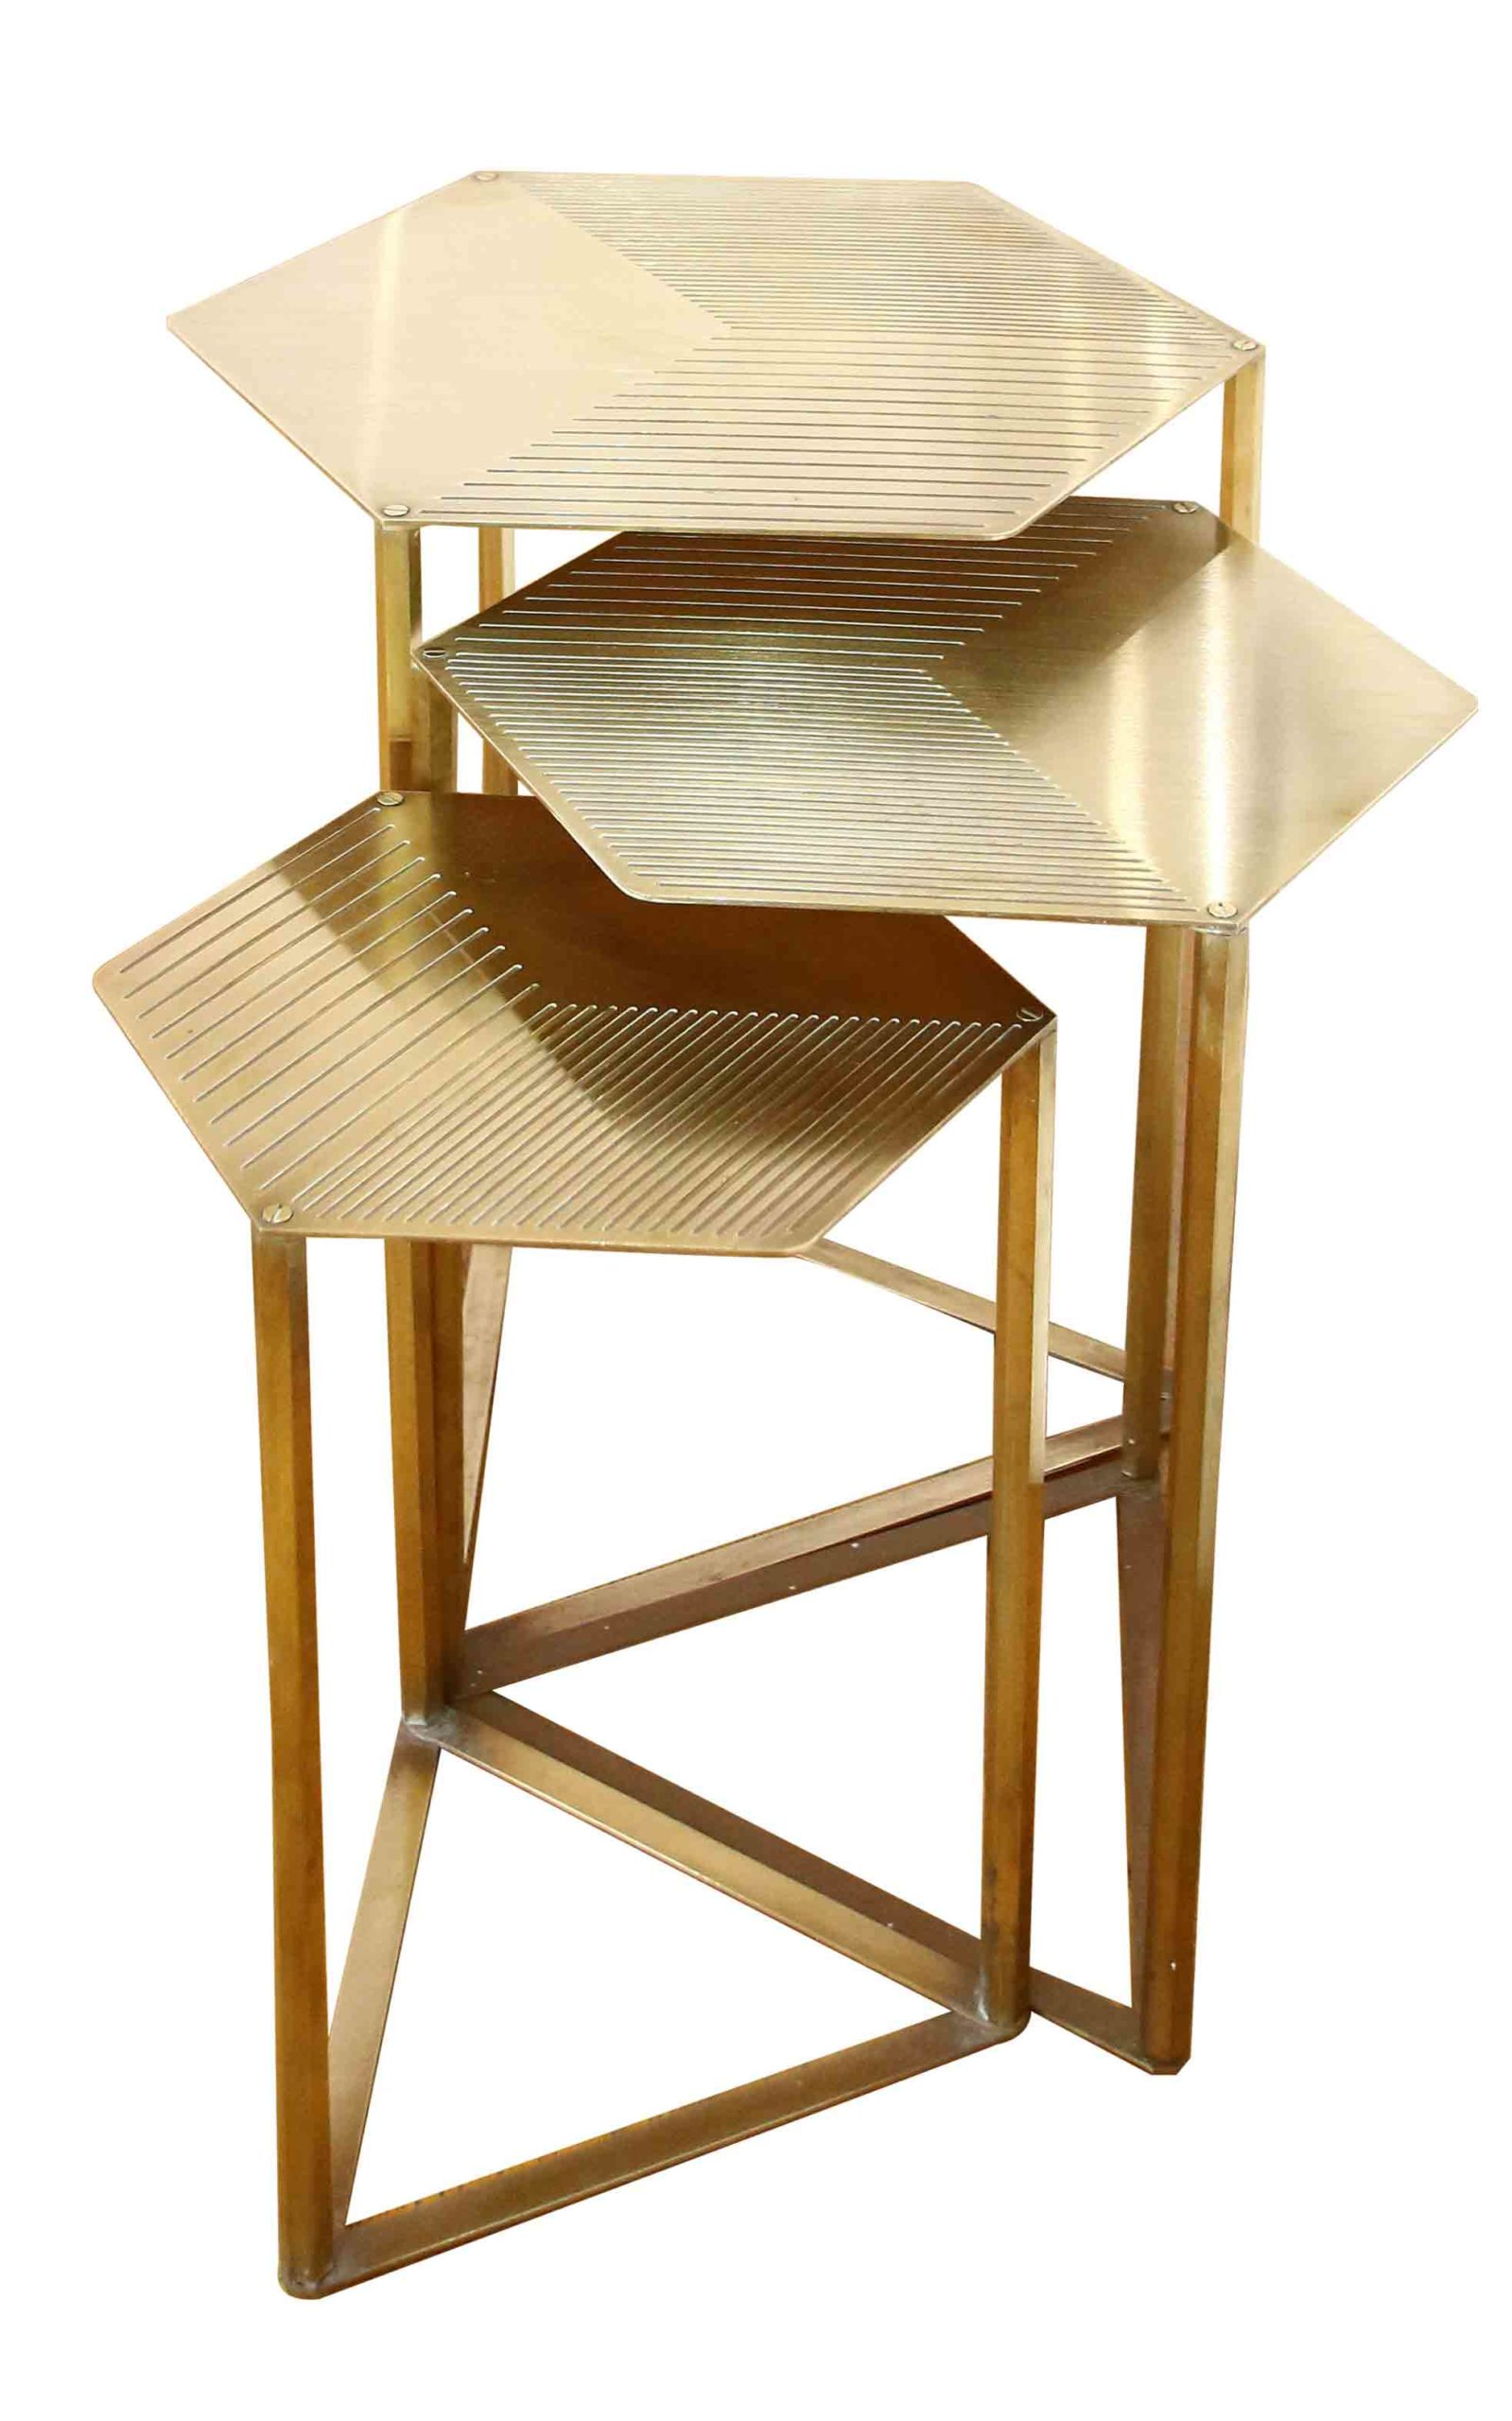 Haldane Martin | Hex side table | Eclectica Contemporary | Art Gallery | Cape Town |